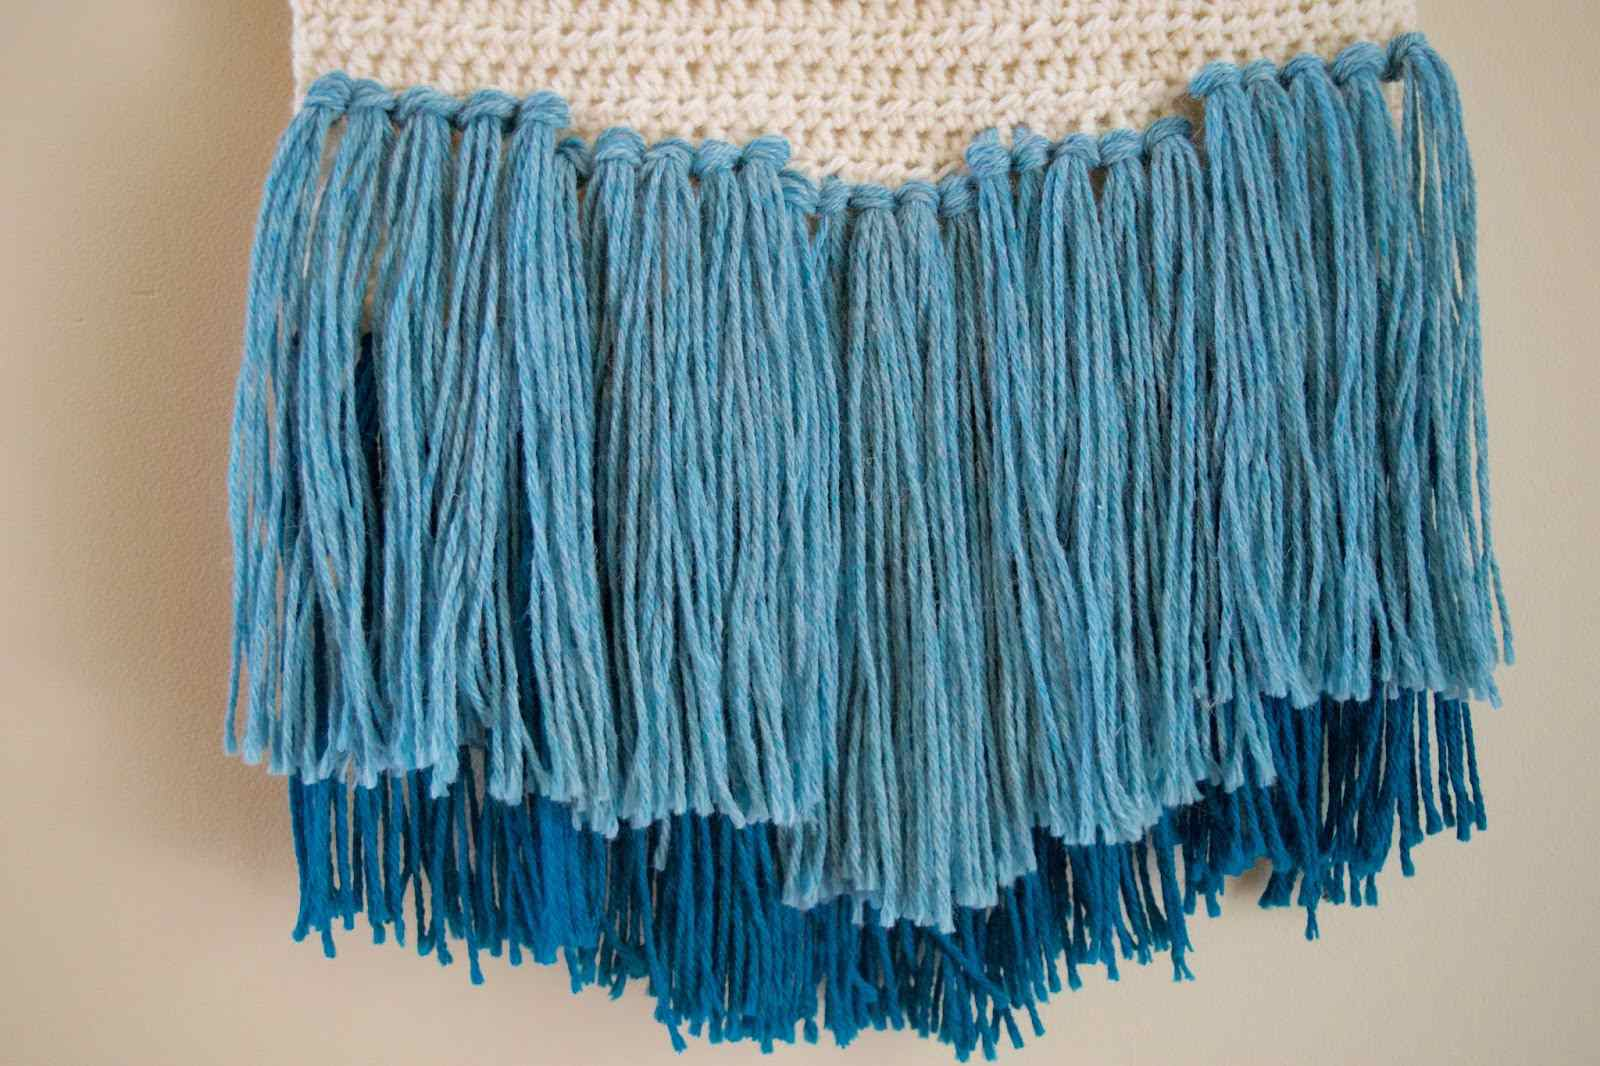 Crochet Wall Hanging with Fringe